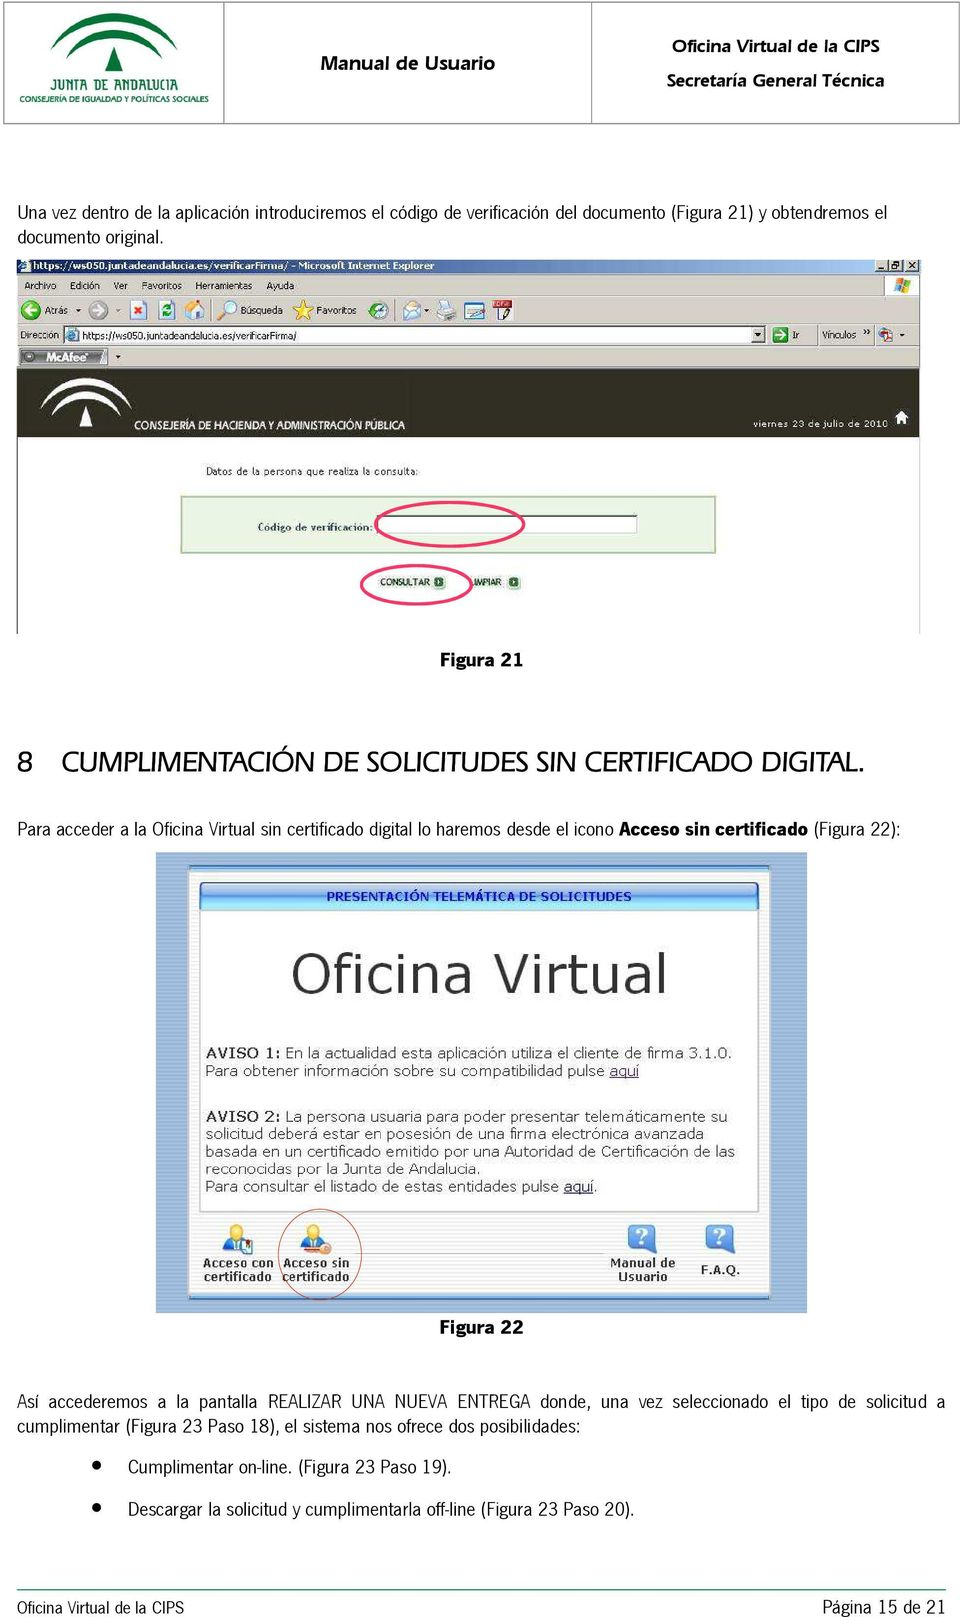 Sistema oficina virtual oficina virtual de la cips pdf for Oficina virtual ifapa